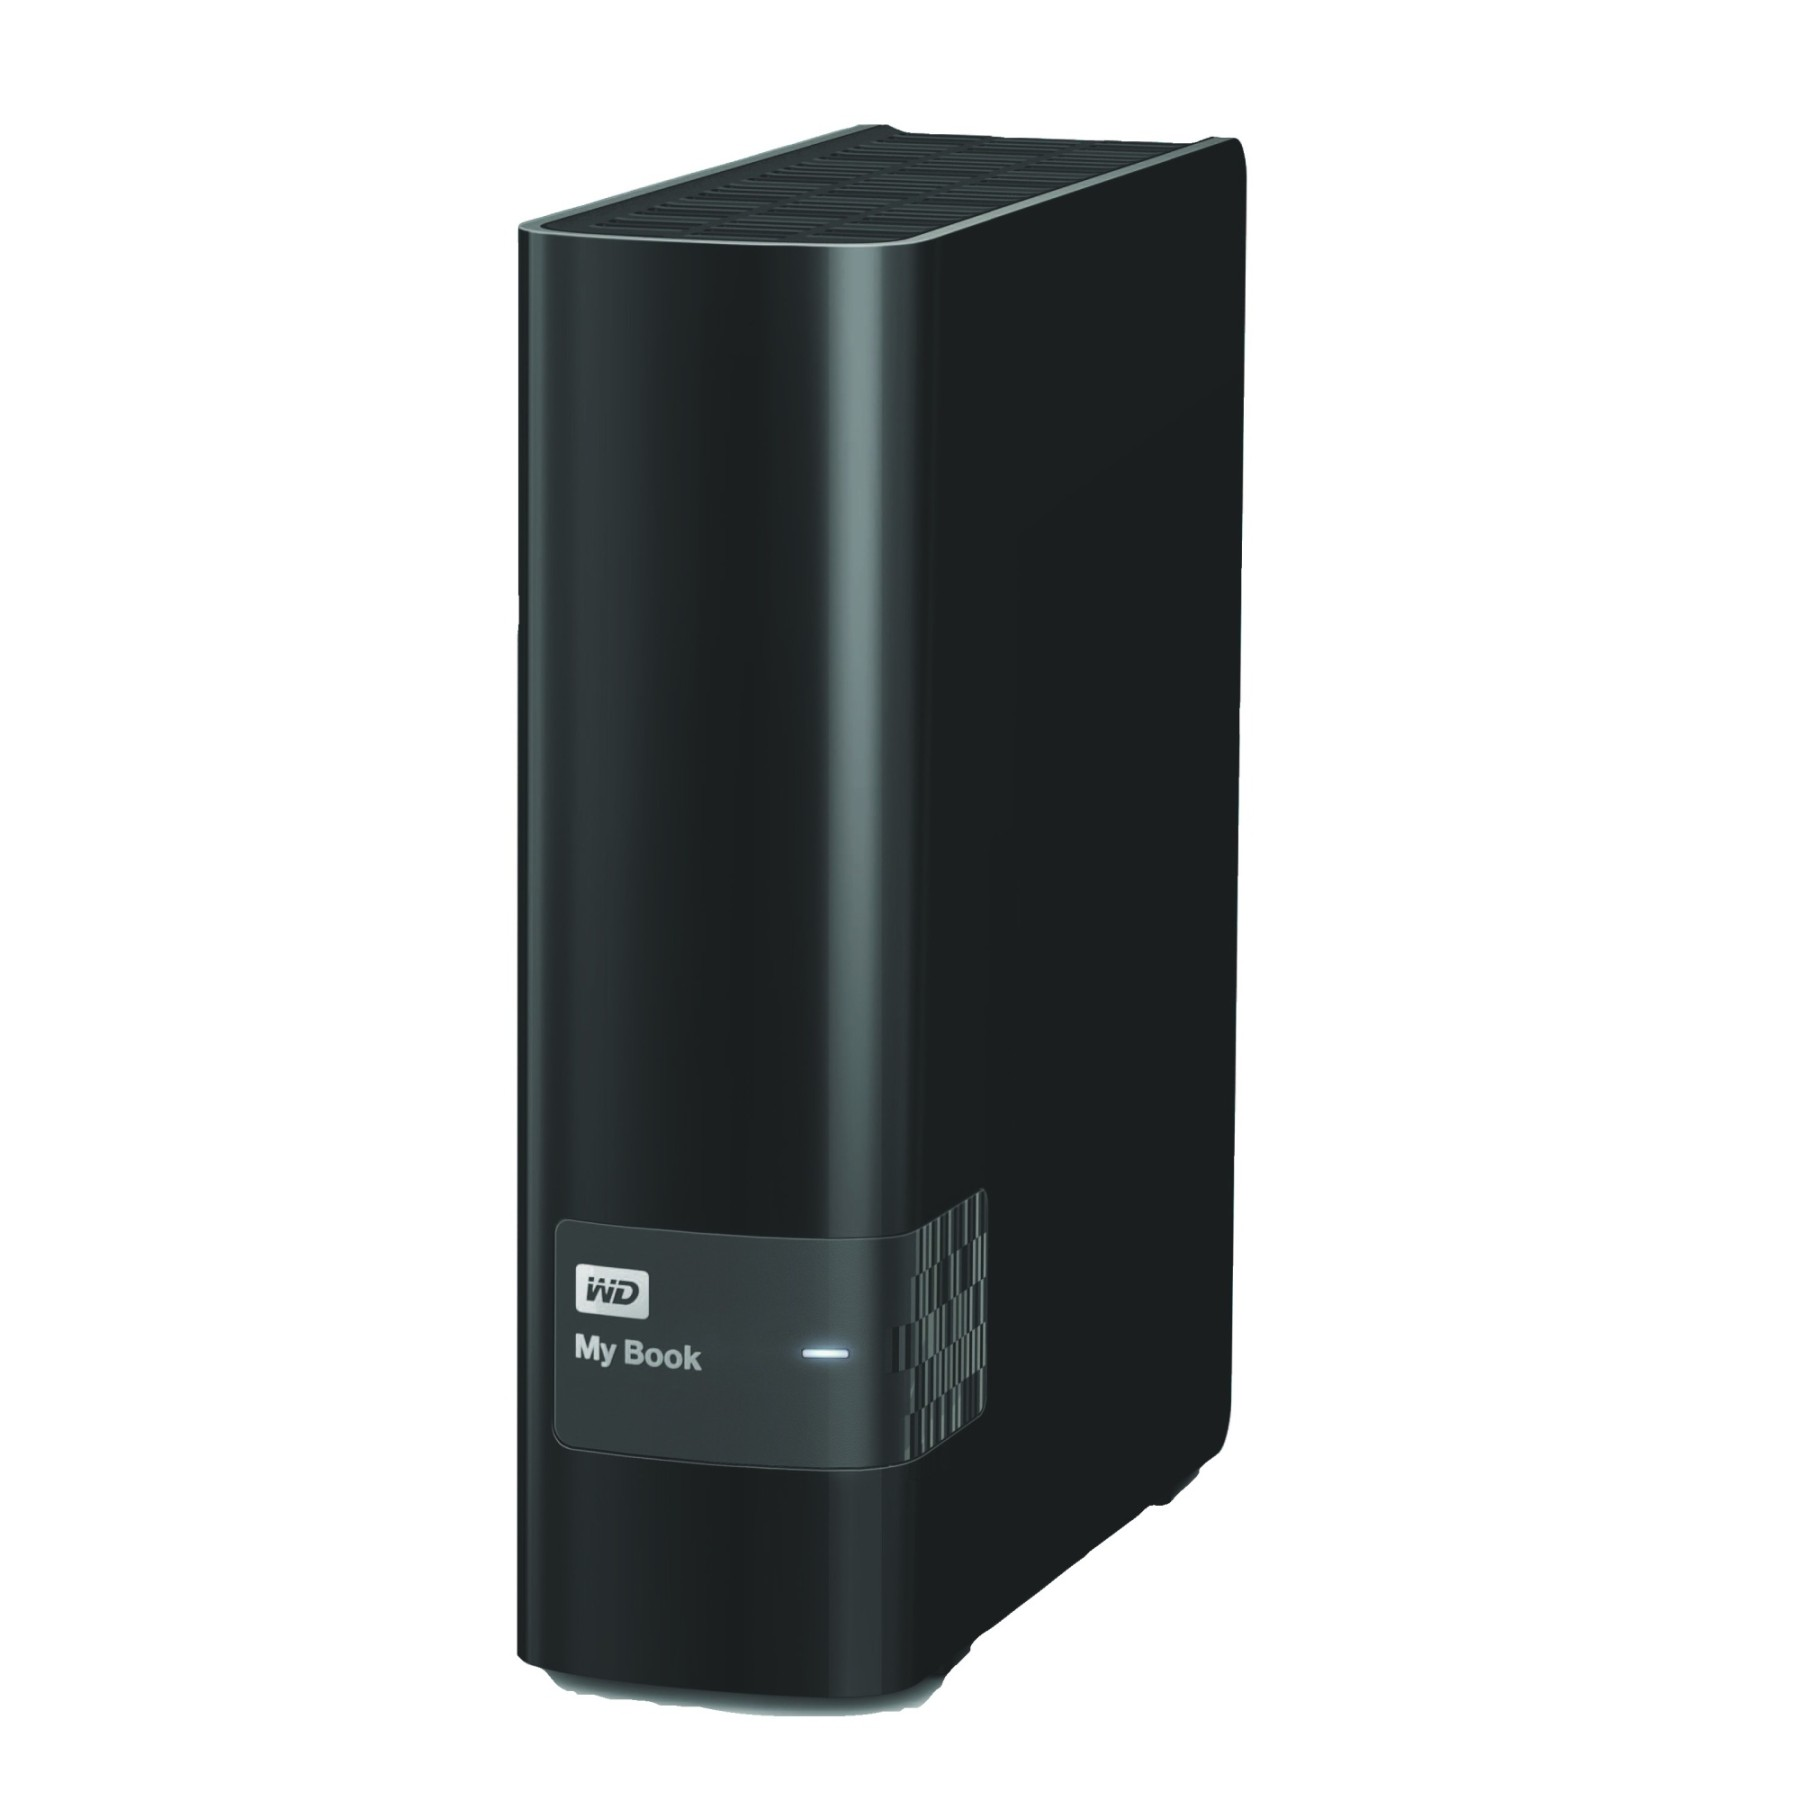 WD 8TB My Book USB 3.0 3.5 Inch External Desktop Hard ...